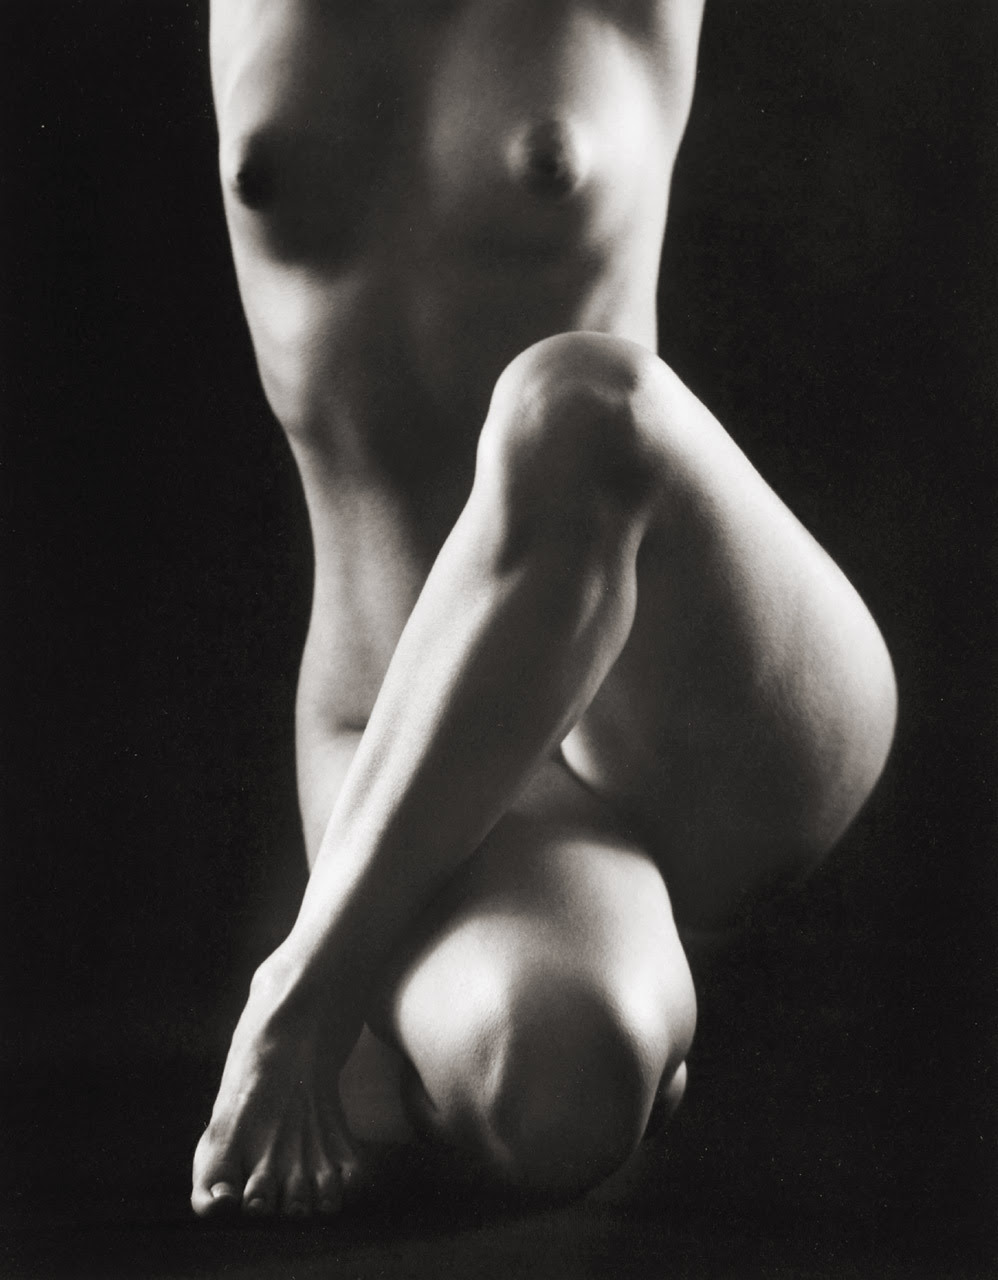 Crossover photo by Ruth Bernhard, 1969